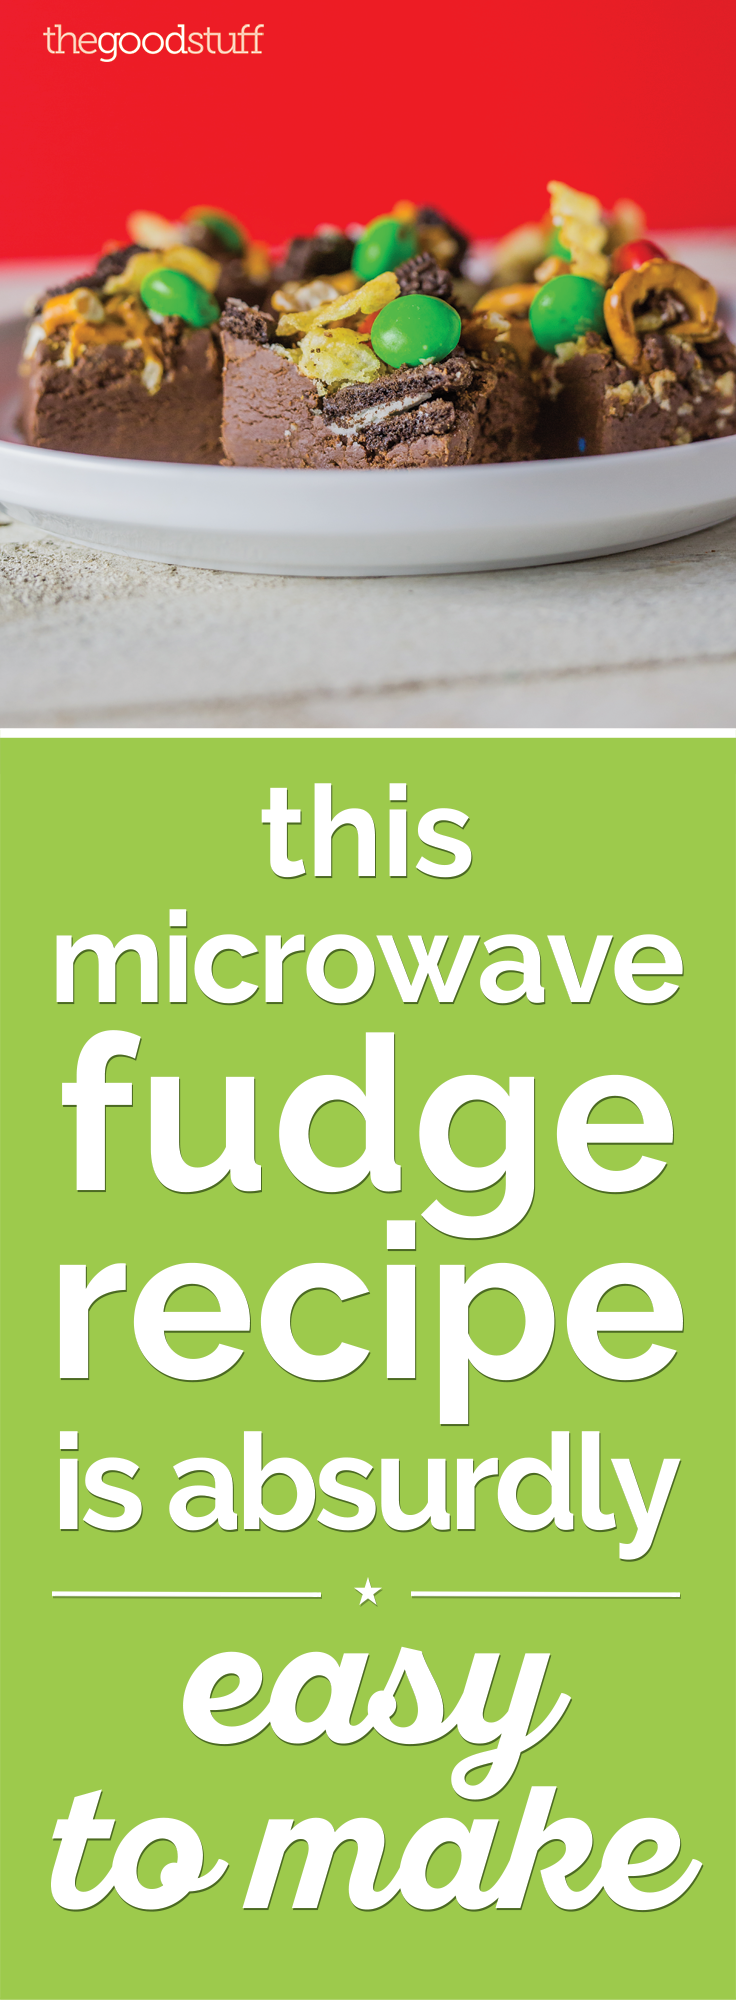 This Microwave Fudge Recipe is Absurdly Easy to Make | thegoodstuff